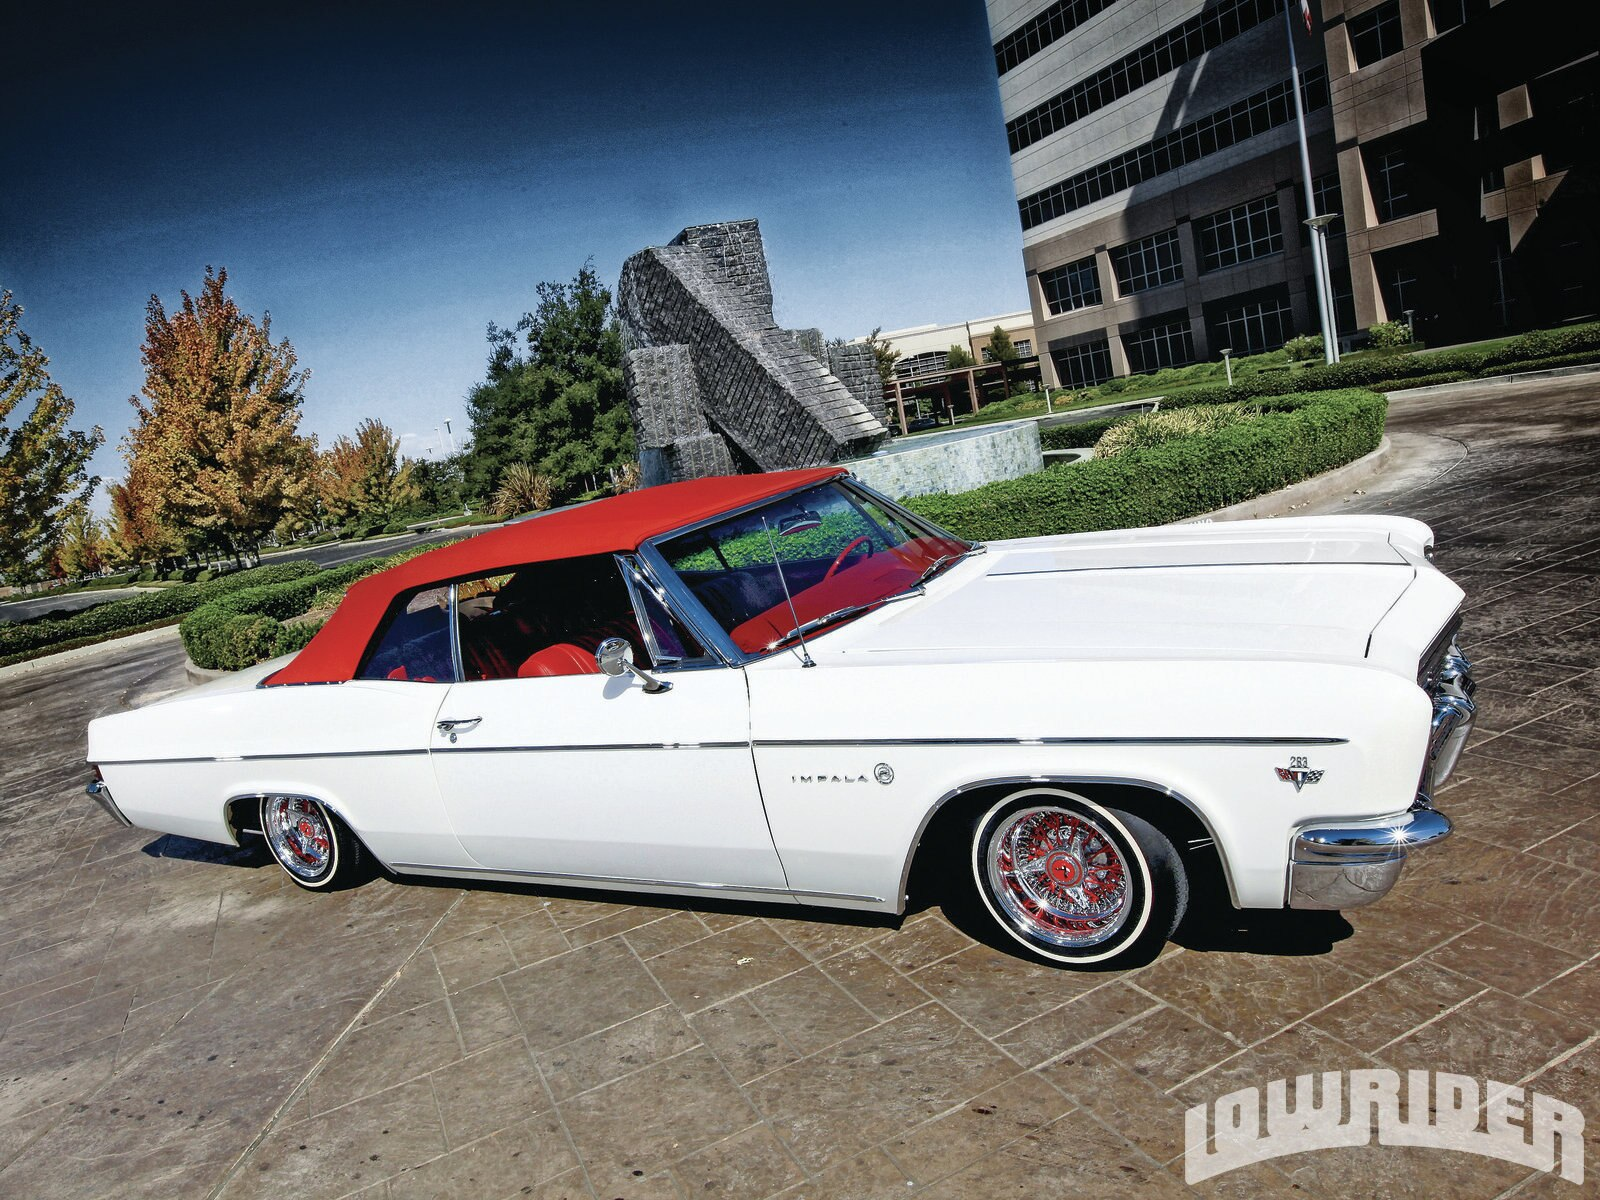 1202-lrmp-04-o-1966-chevrolet-impala-convertible-passenger-side-view1